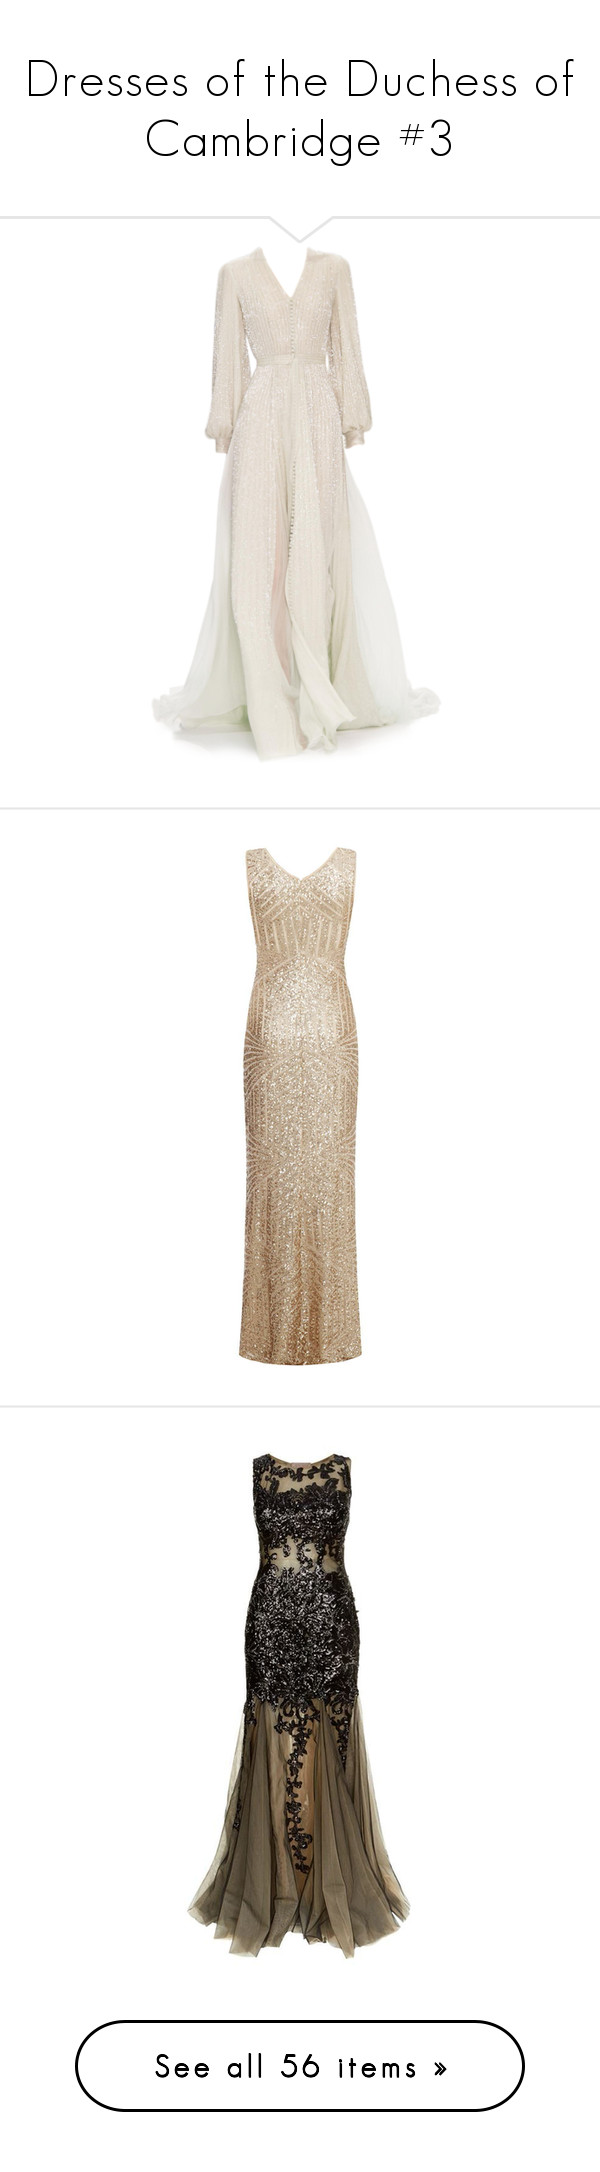 """Dresses of the Duchess of Cambridge #3"" by duchessamparo ❤ liked on Polyvore featuring dresses, gowns, long dresses, vestidos, couture dresses, couture gowns, couture evening dresses, couture ball gowns, gold and sleeveless maxi dress"